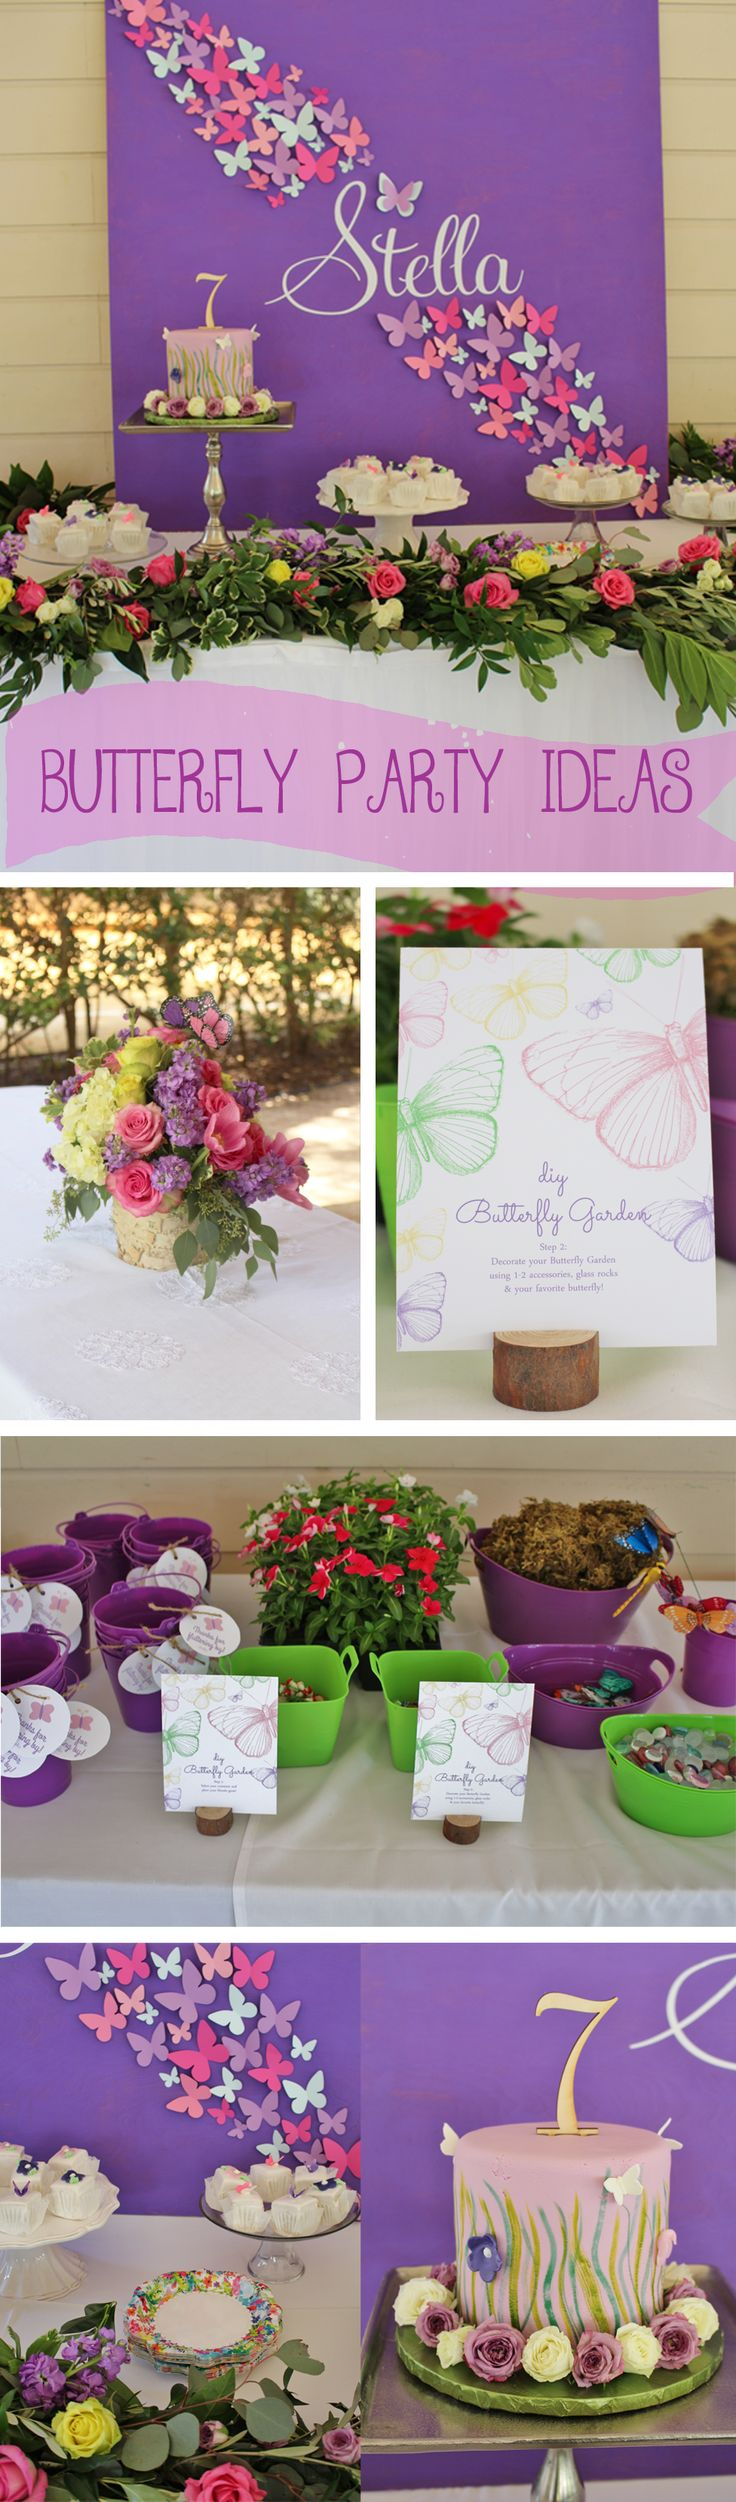 Butterfly Party, Butterfly Birthday Party, Butterfly Birthday Party Ideas, DIY Garden, Garden Party Favor Ideas, Floral Centerpieces,